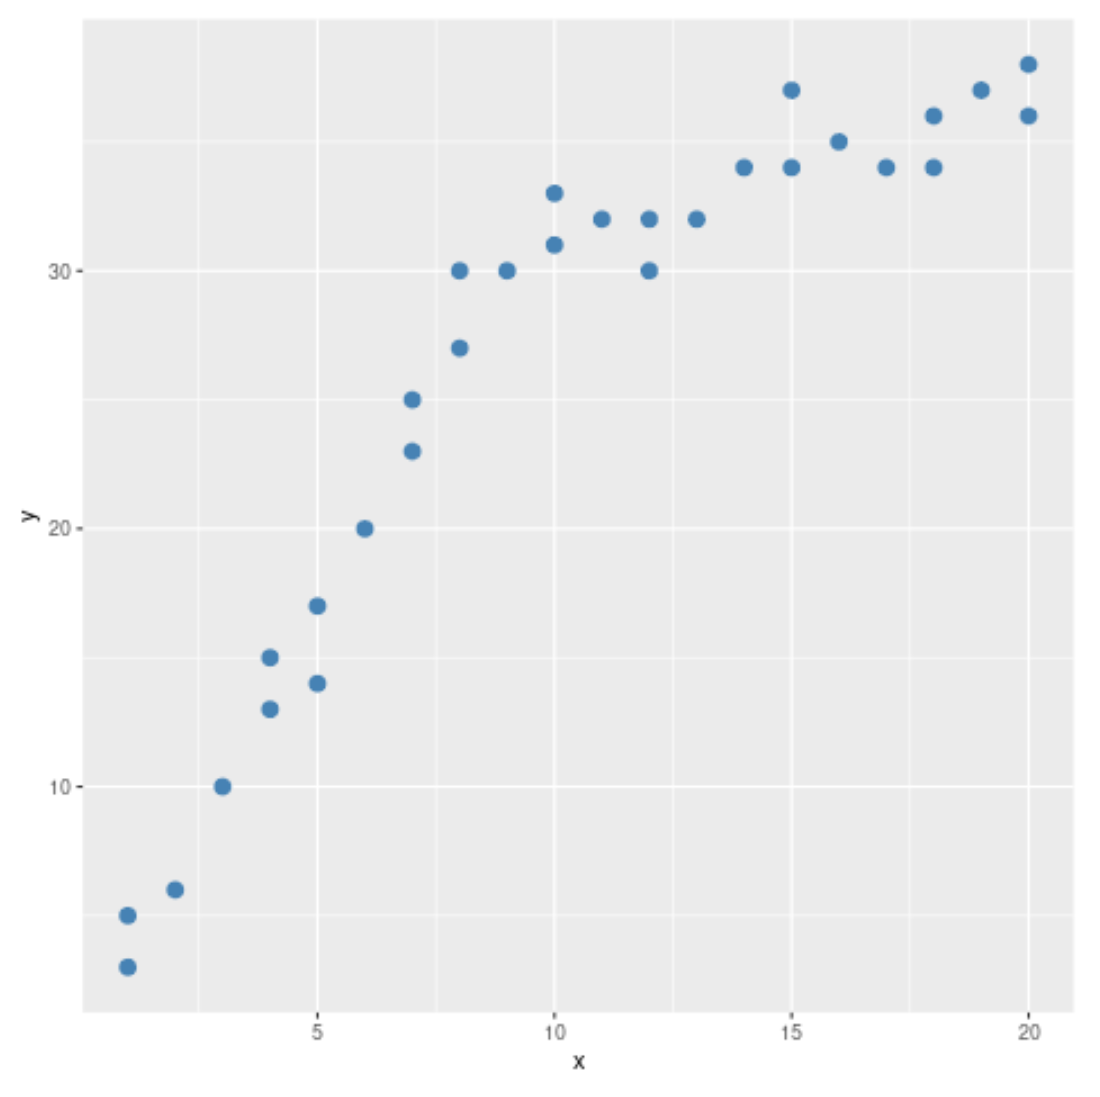 Chow test in R